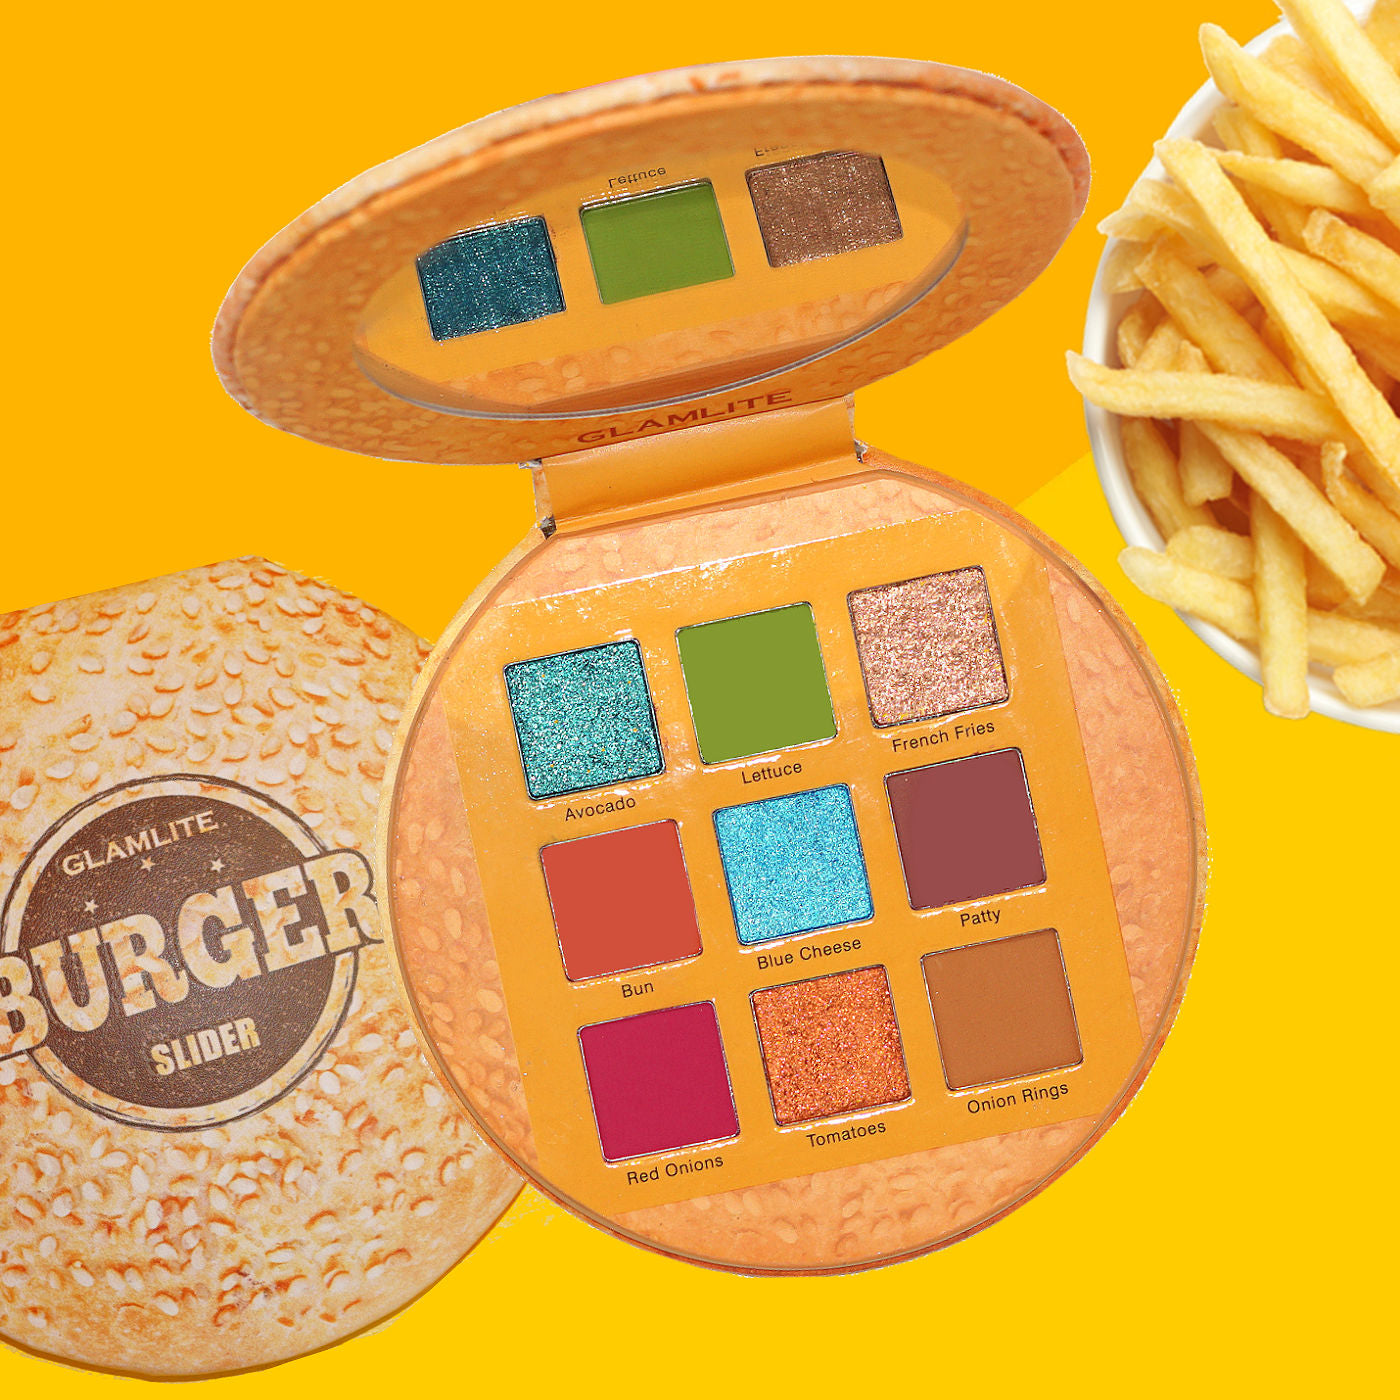 Burger Slider Palette